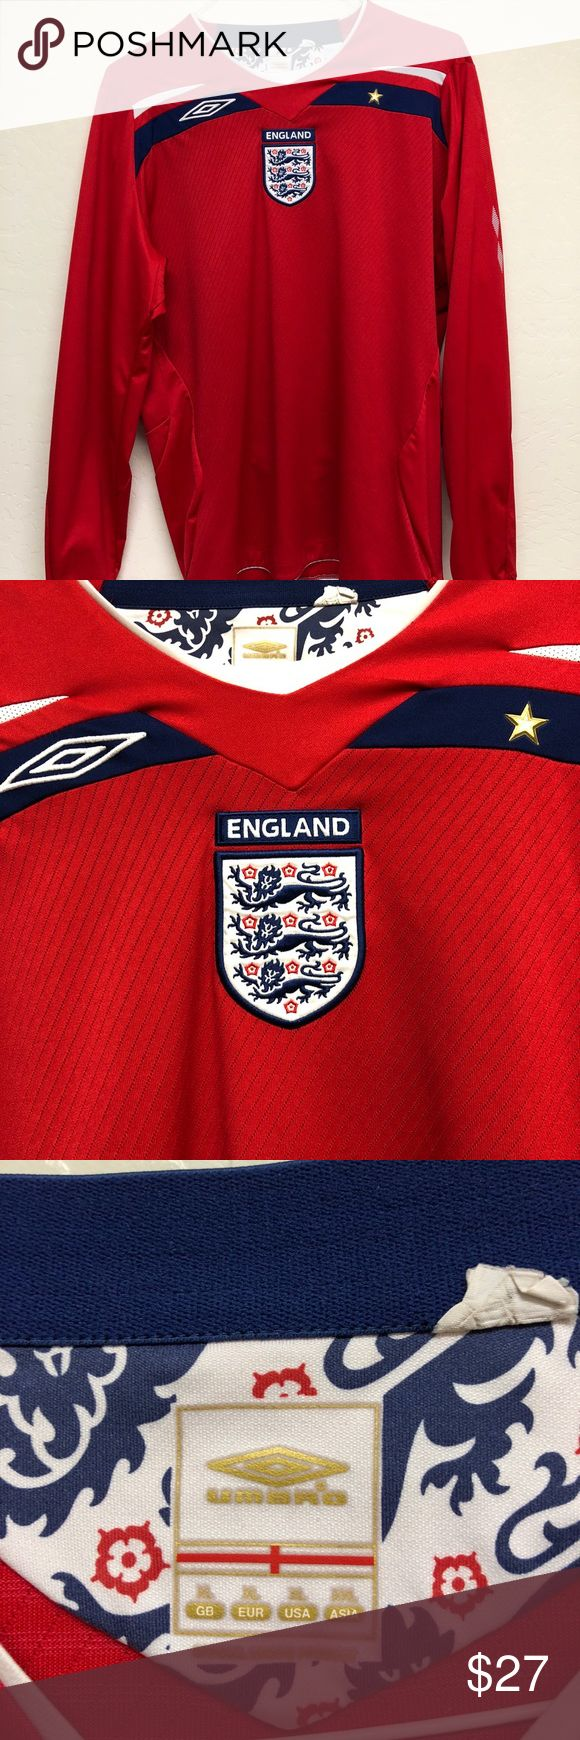 England Away Soccer Jersey Kit Red 2008-10 size XL England Away Soccer Jersey Kit Red 2008-10 size XL Umbro ⚽️  Pre Owned 8/10 Condition   No Returns   Only Shipping to the USA 🇺🇸  #England #Soccer #futbol #red #long #sleeve #longsleeve #jersey #kit #umbro Umbro Other